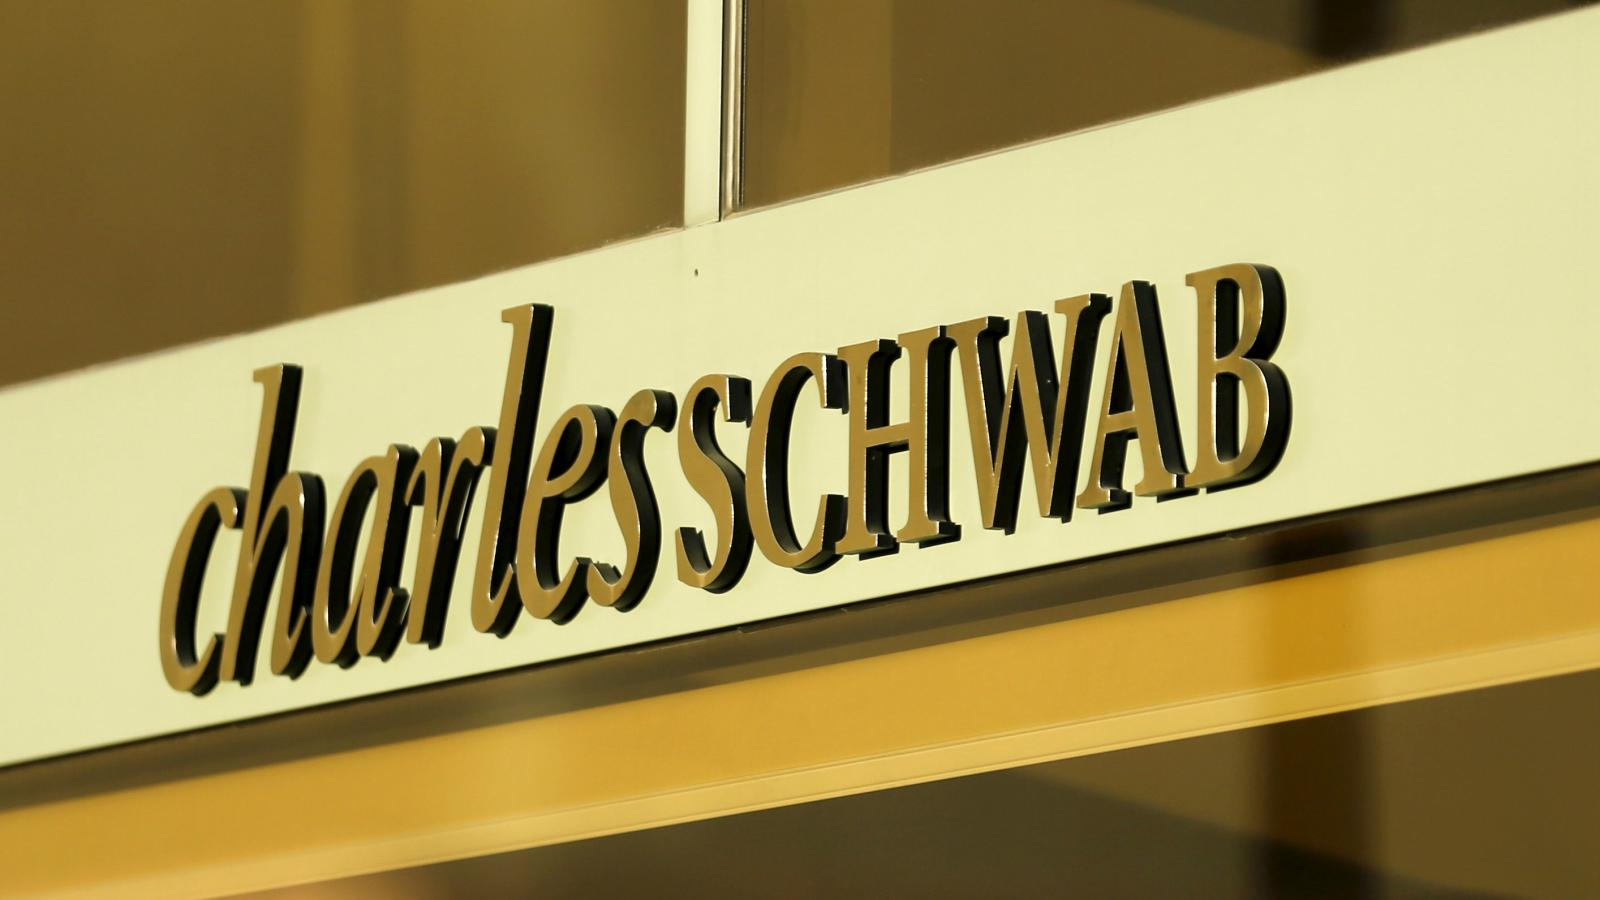 charles schwab buying cryptocurrency